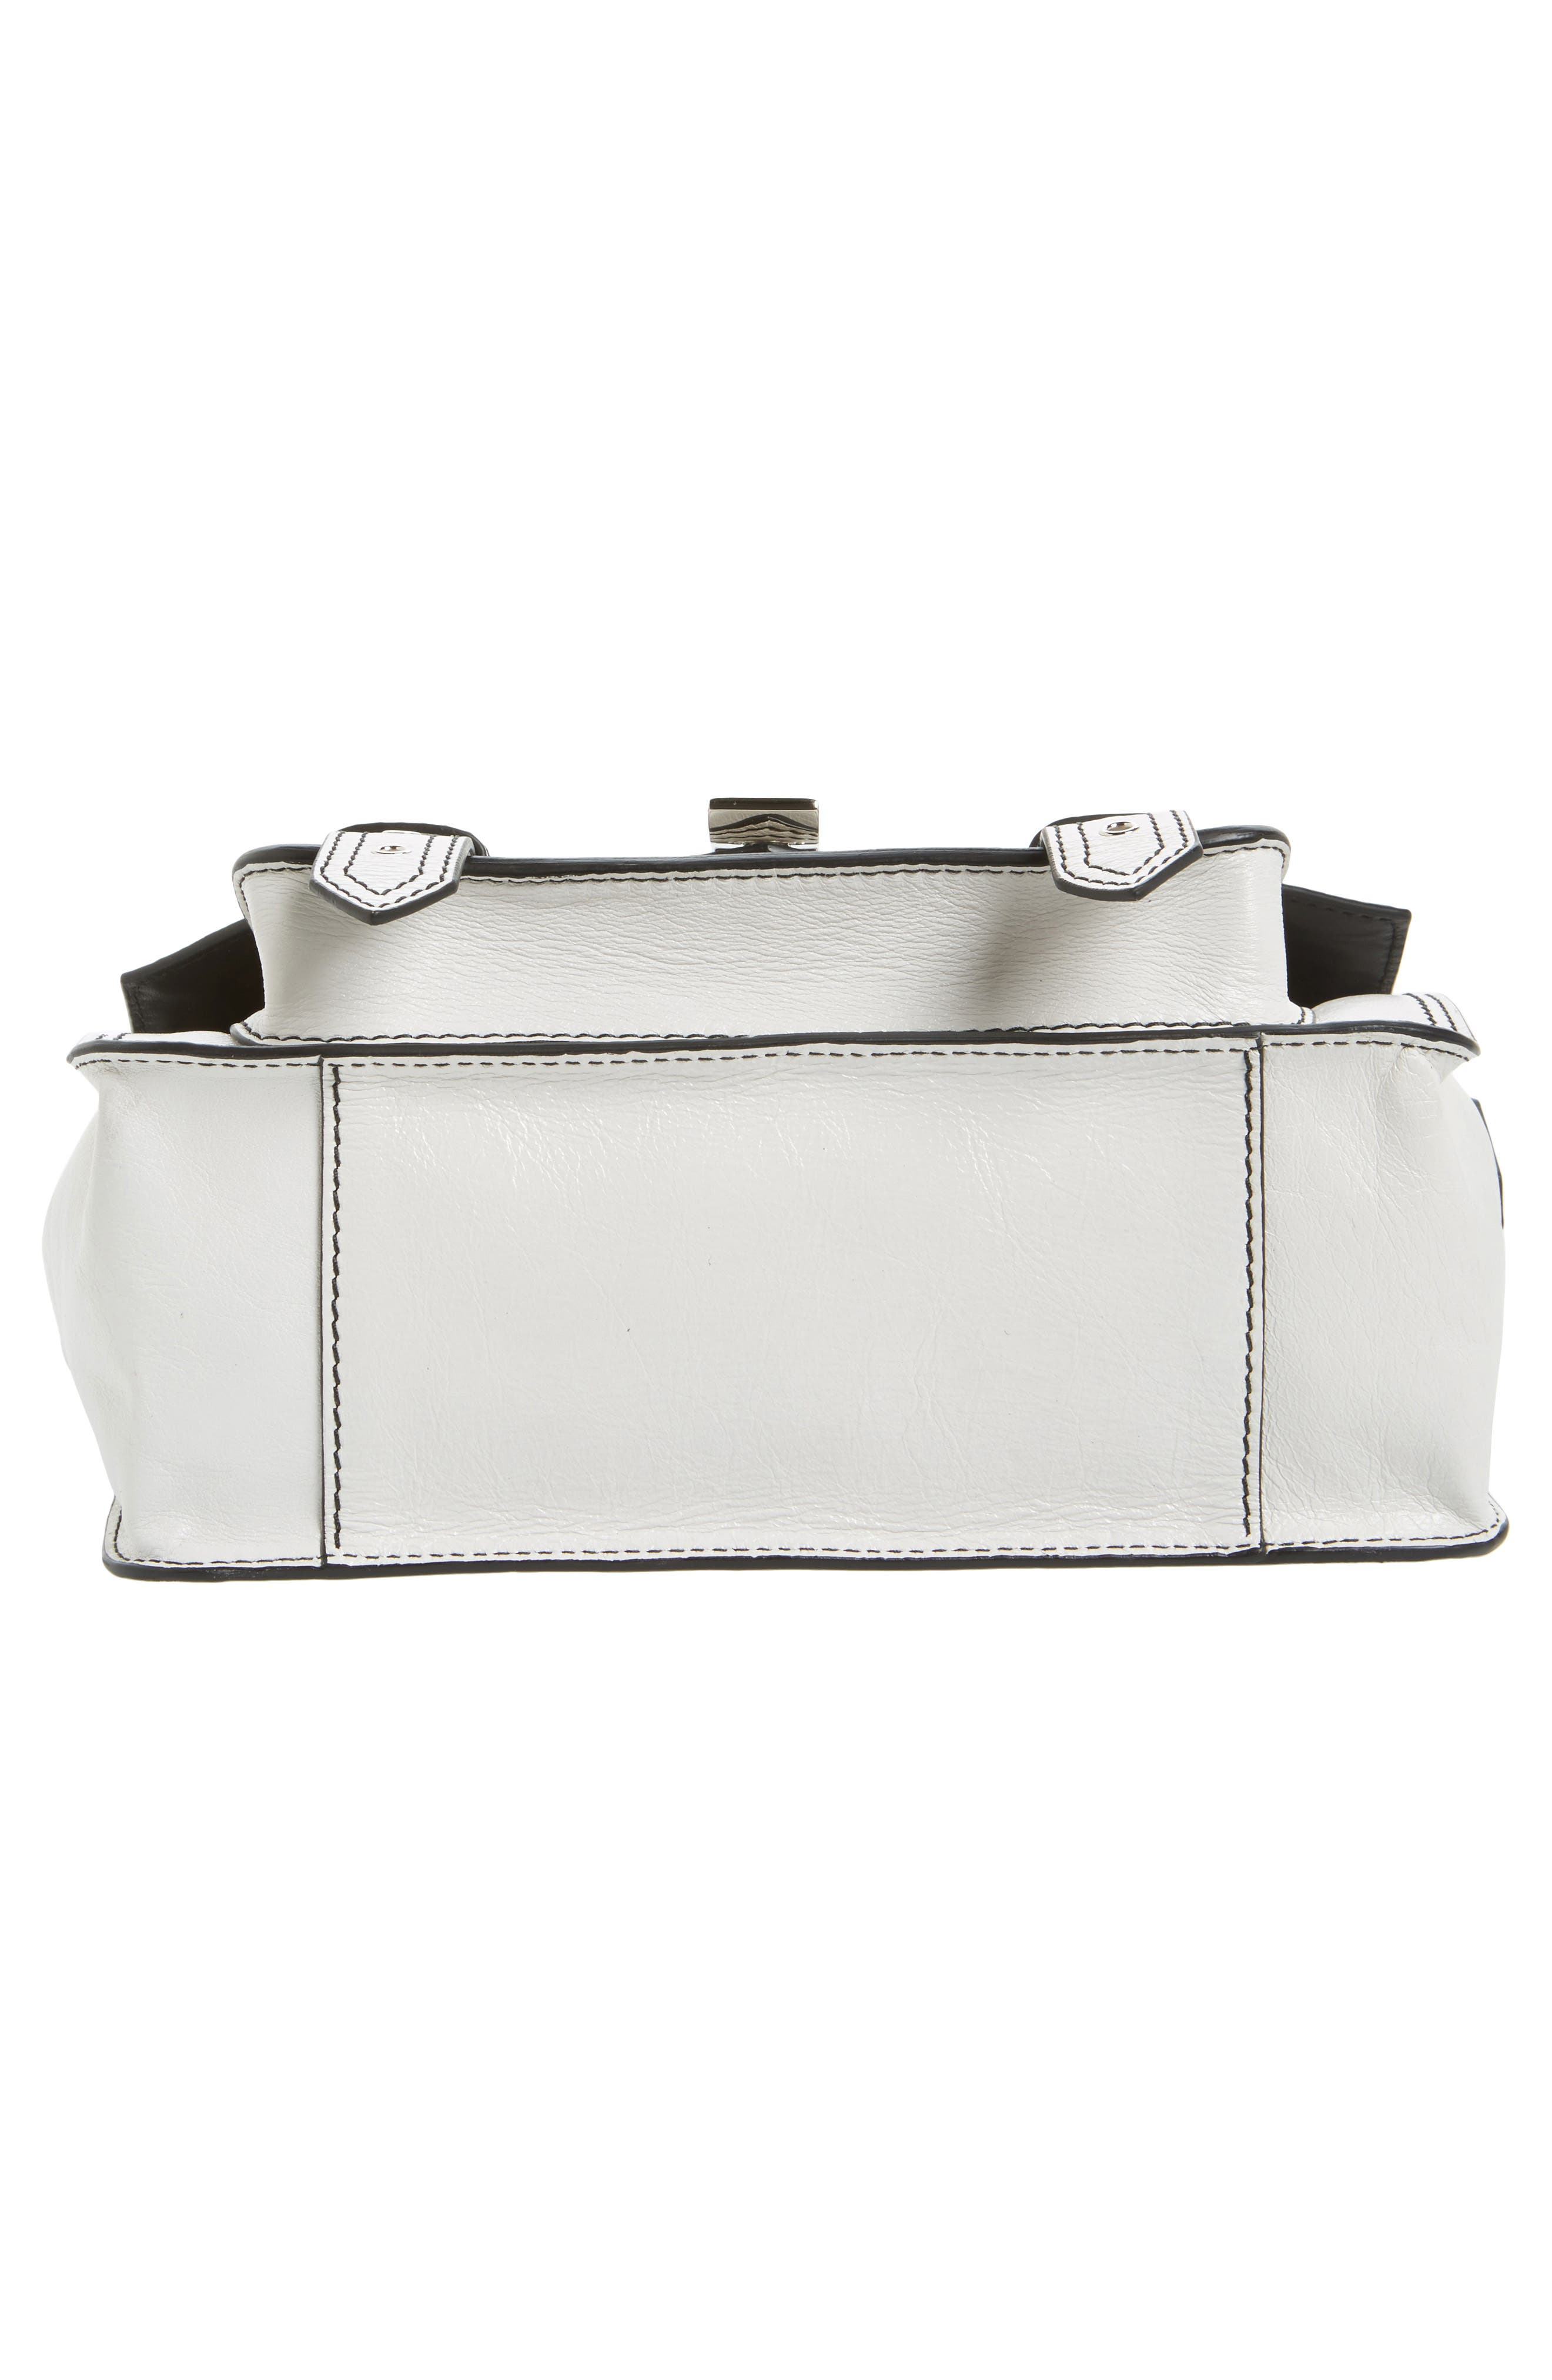 Tiny PS1 Calfskin Leather Satchel with Novelty Shoulder/Crossbody Strap,                             Alternate thumbnail 4, color,                             Optic White